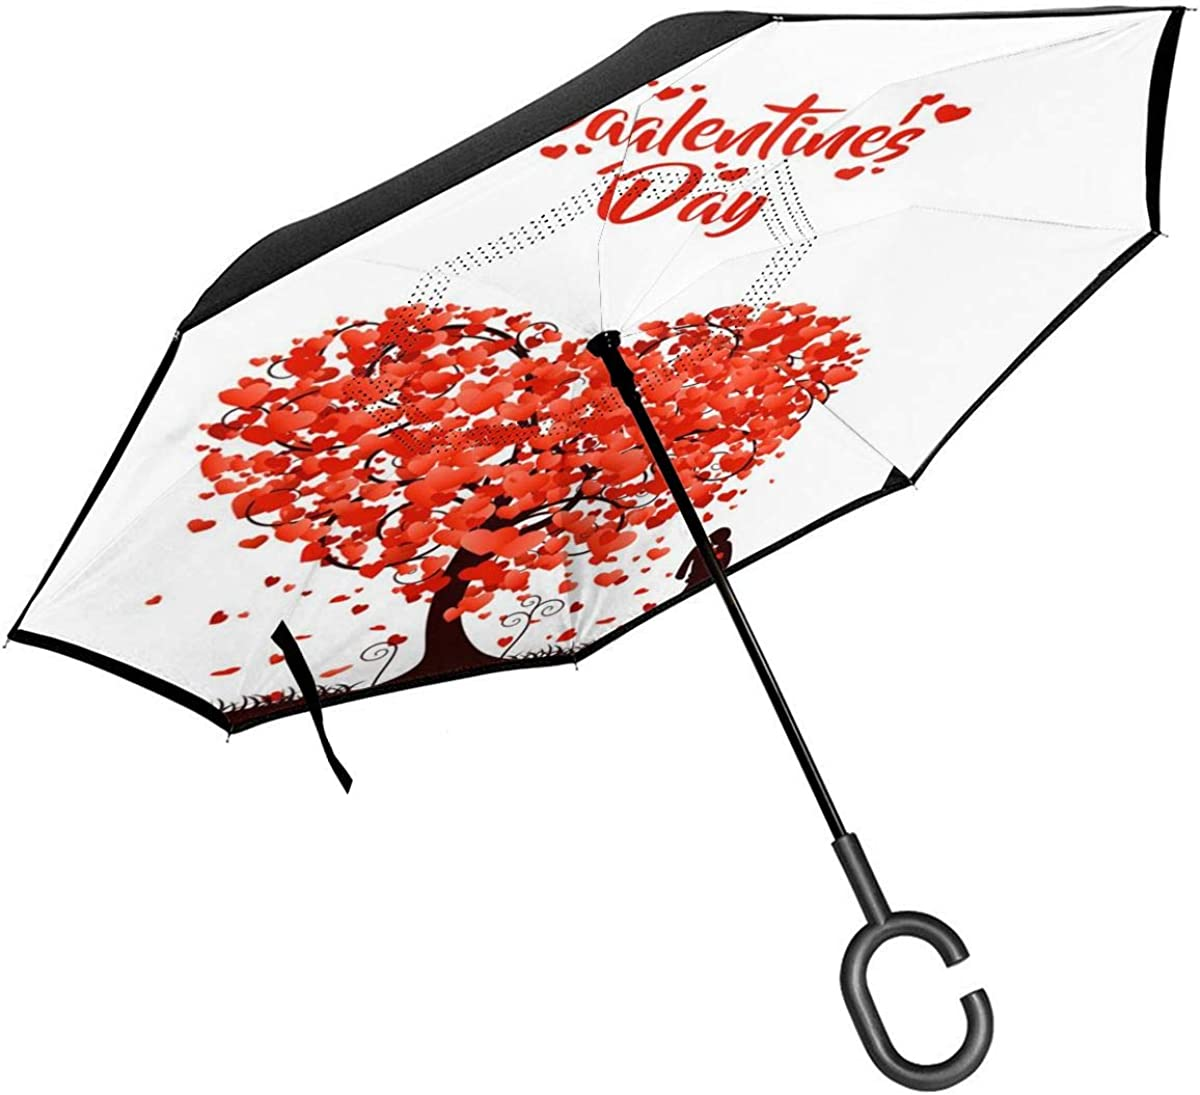 Happy Valentines Day Under The Love Tree Reverse Umbrella Double Layer Inverted Umbrellas For Car Rain Outdoor With C-Shaped Handle Customized